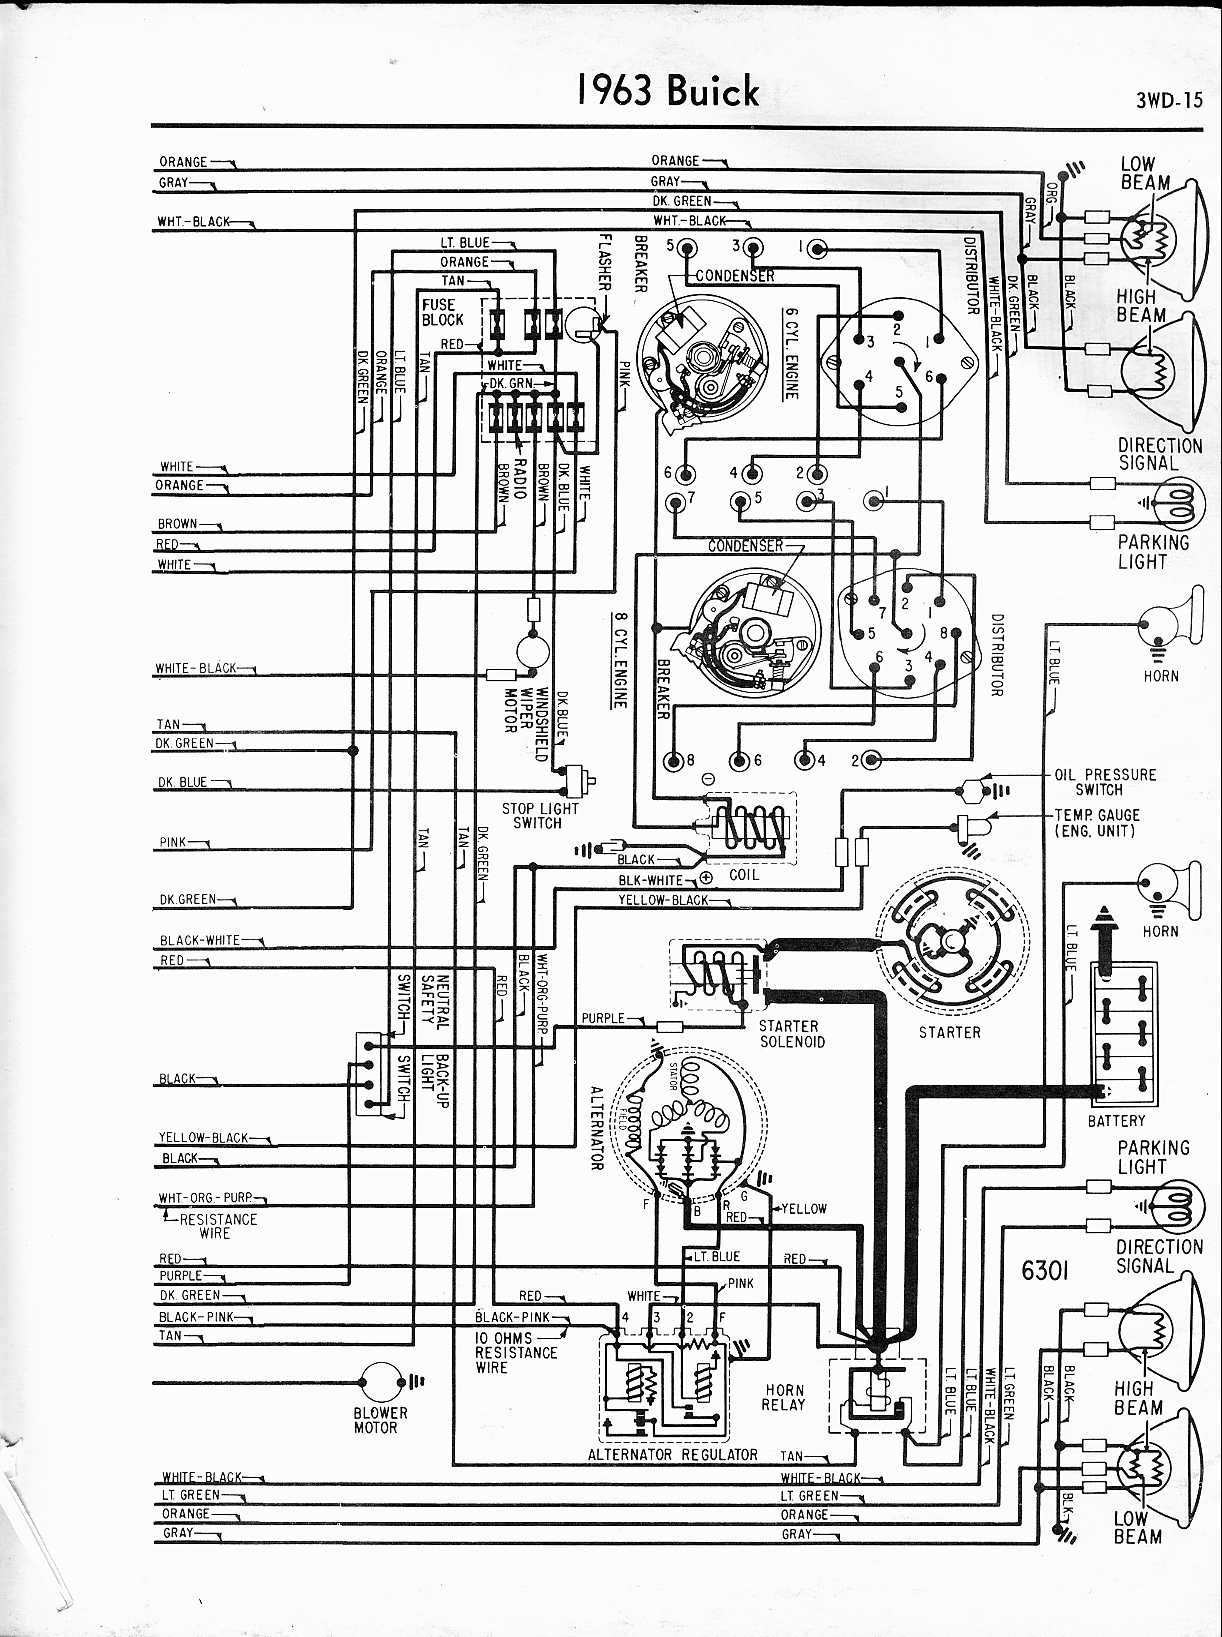 1960 buick ignition vacuum diagram wiring diagram db  1960 buick wiring diagram #5